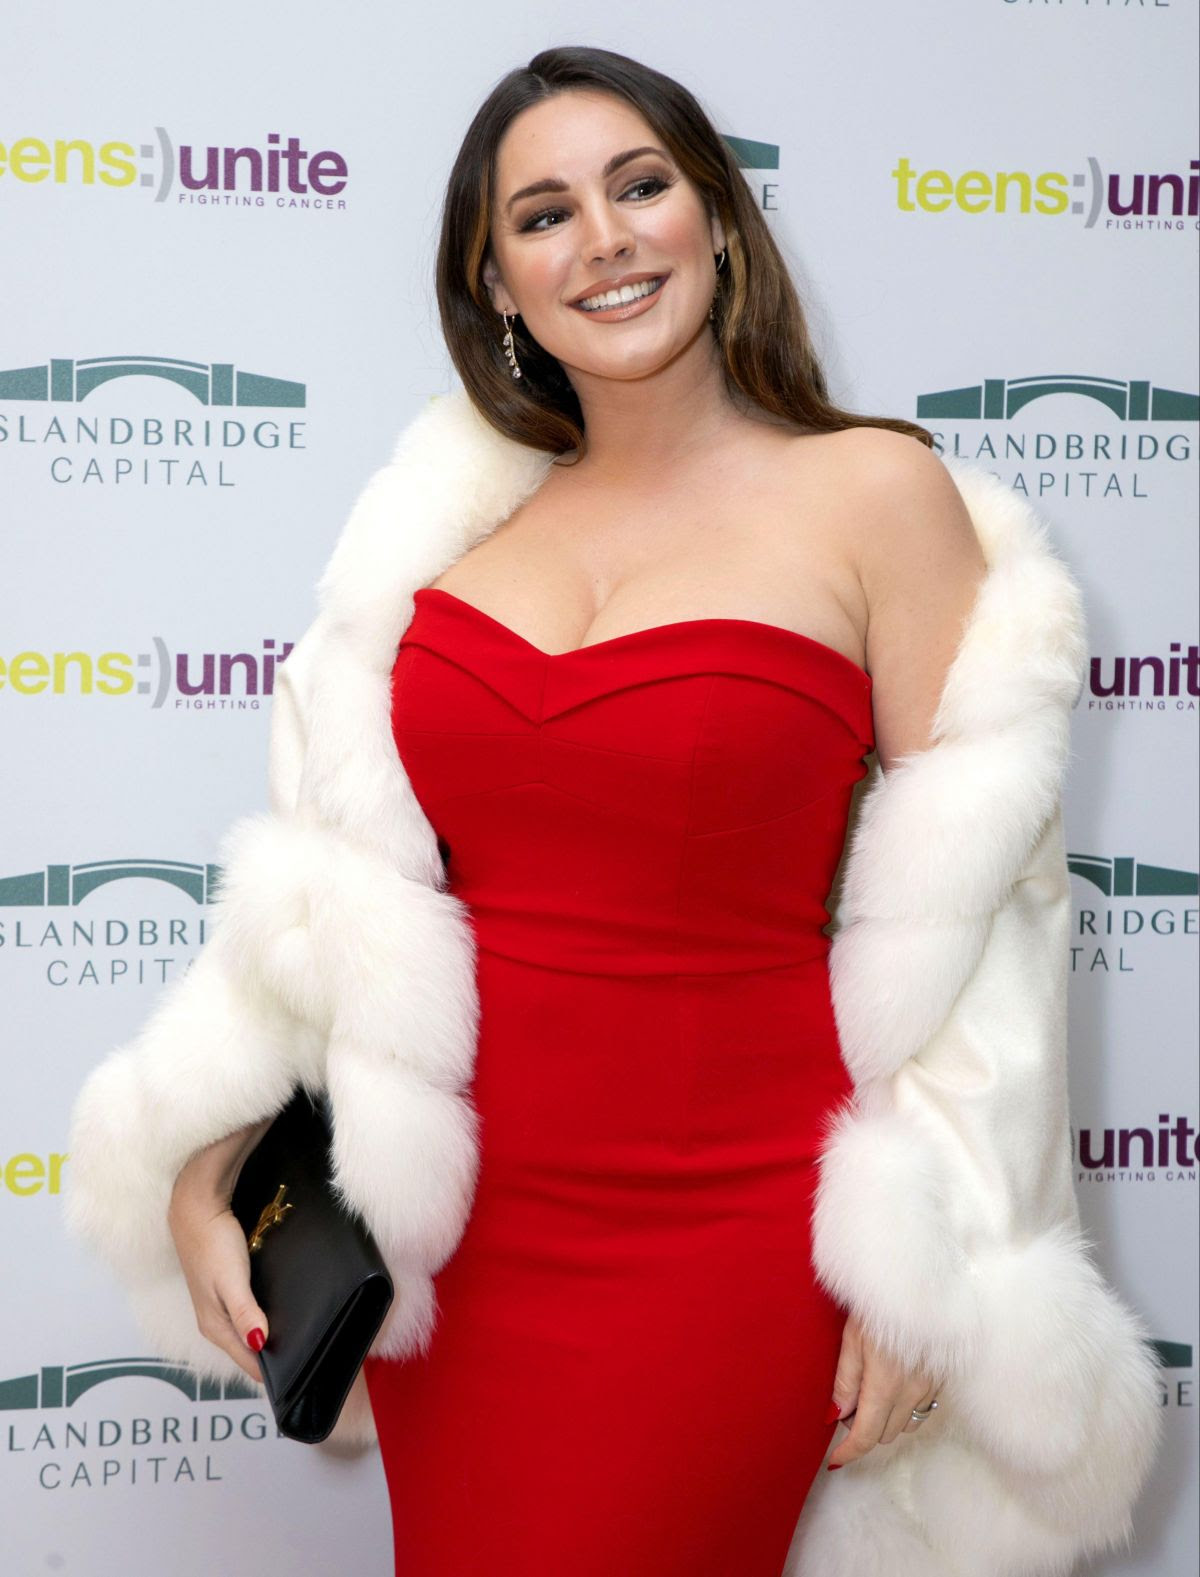 Kelly Brook attending the Tens Unite - Ten Year Tale Fundraising Gala in London - Sexy Actress Pictures | Hot Actress Pictures